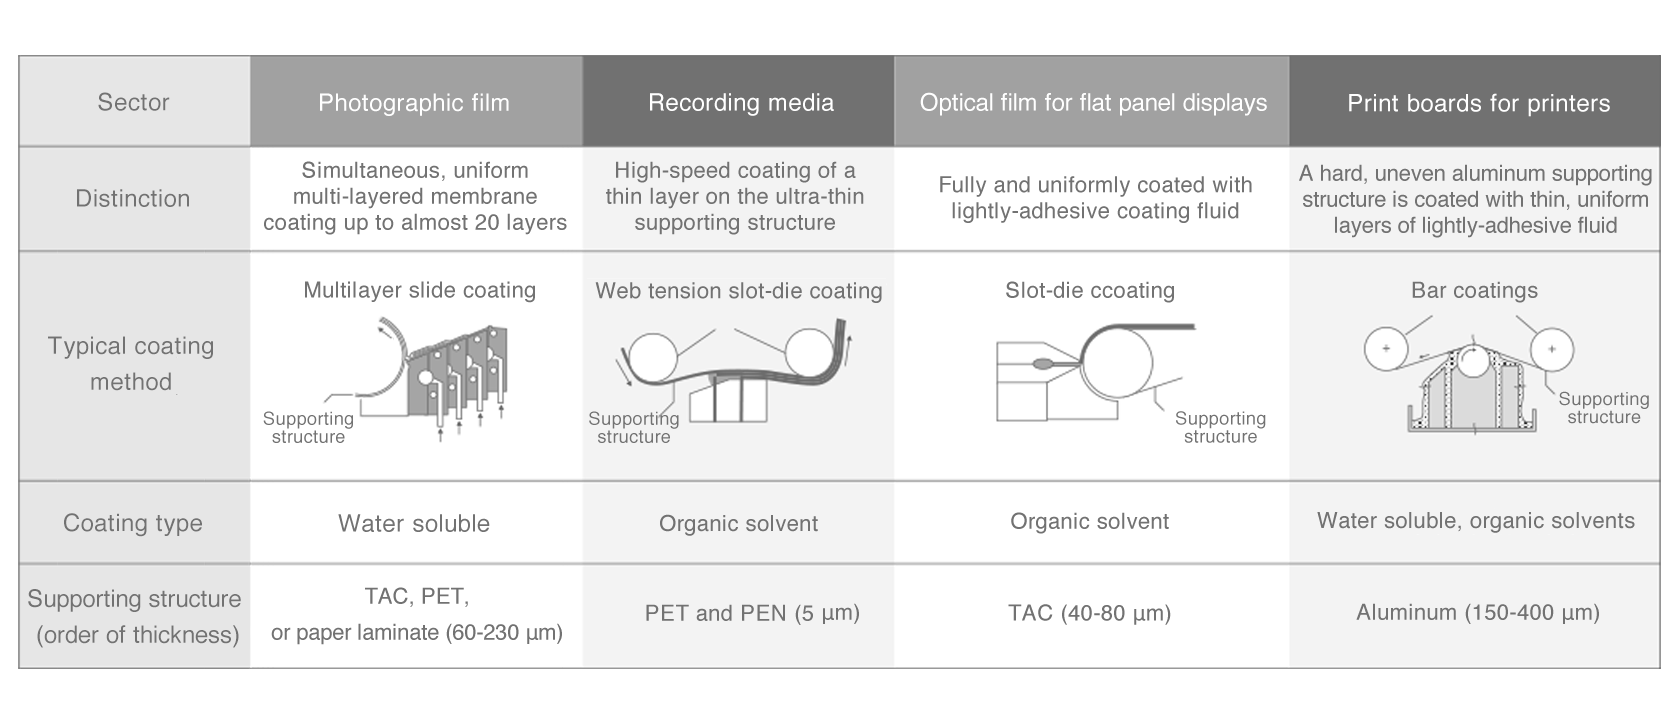 [image] Developing precision coating methods tailored to products